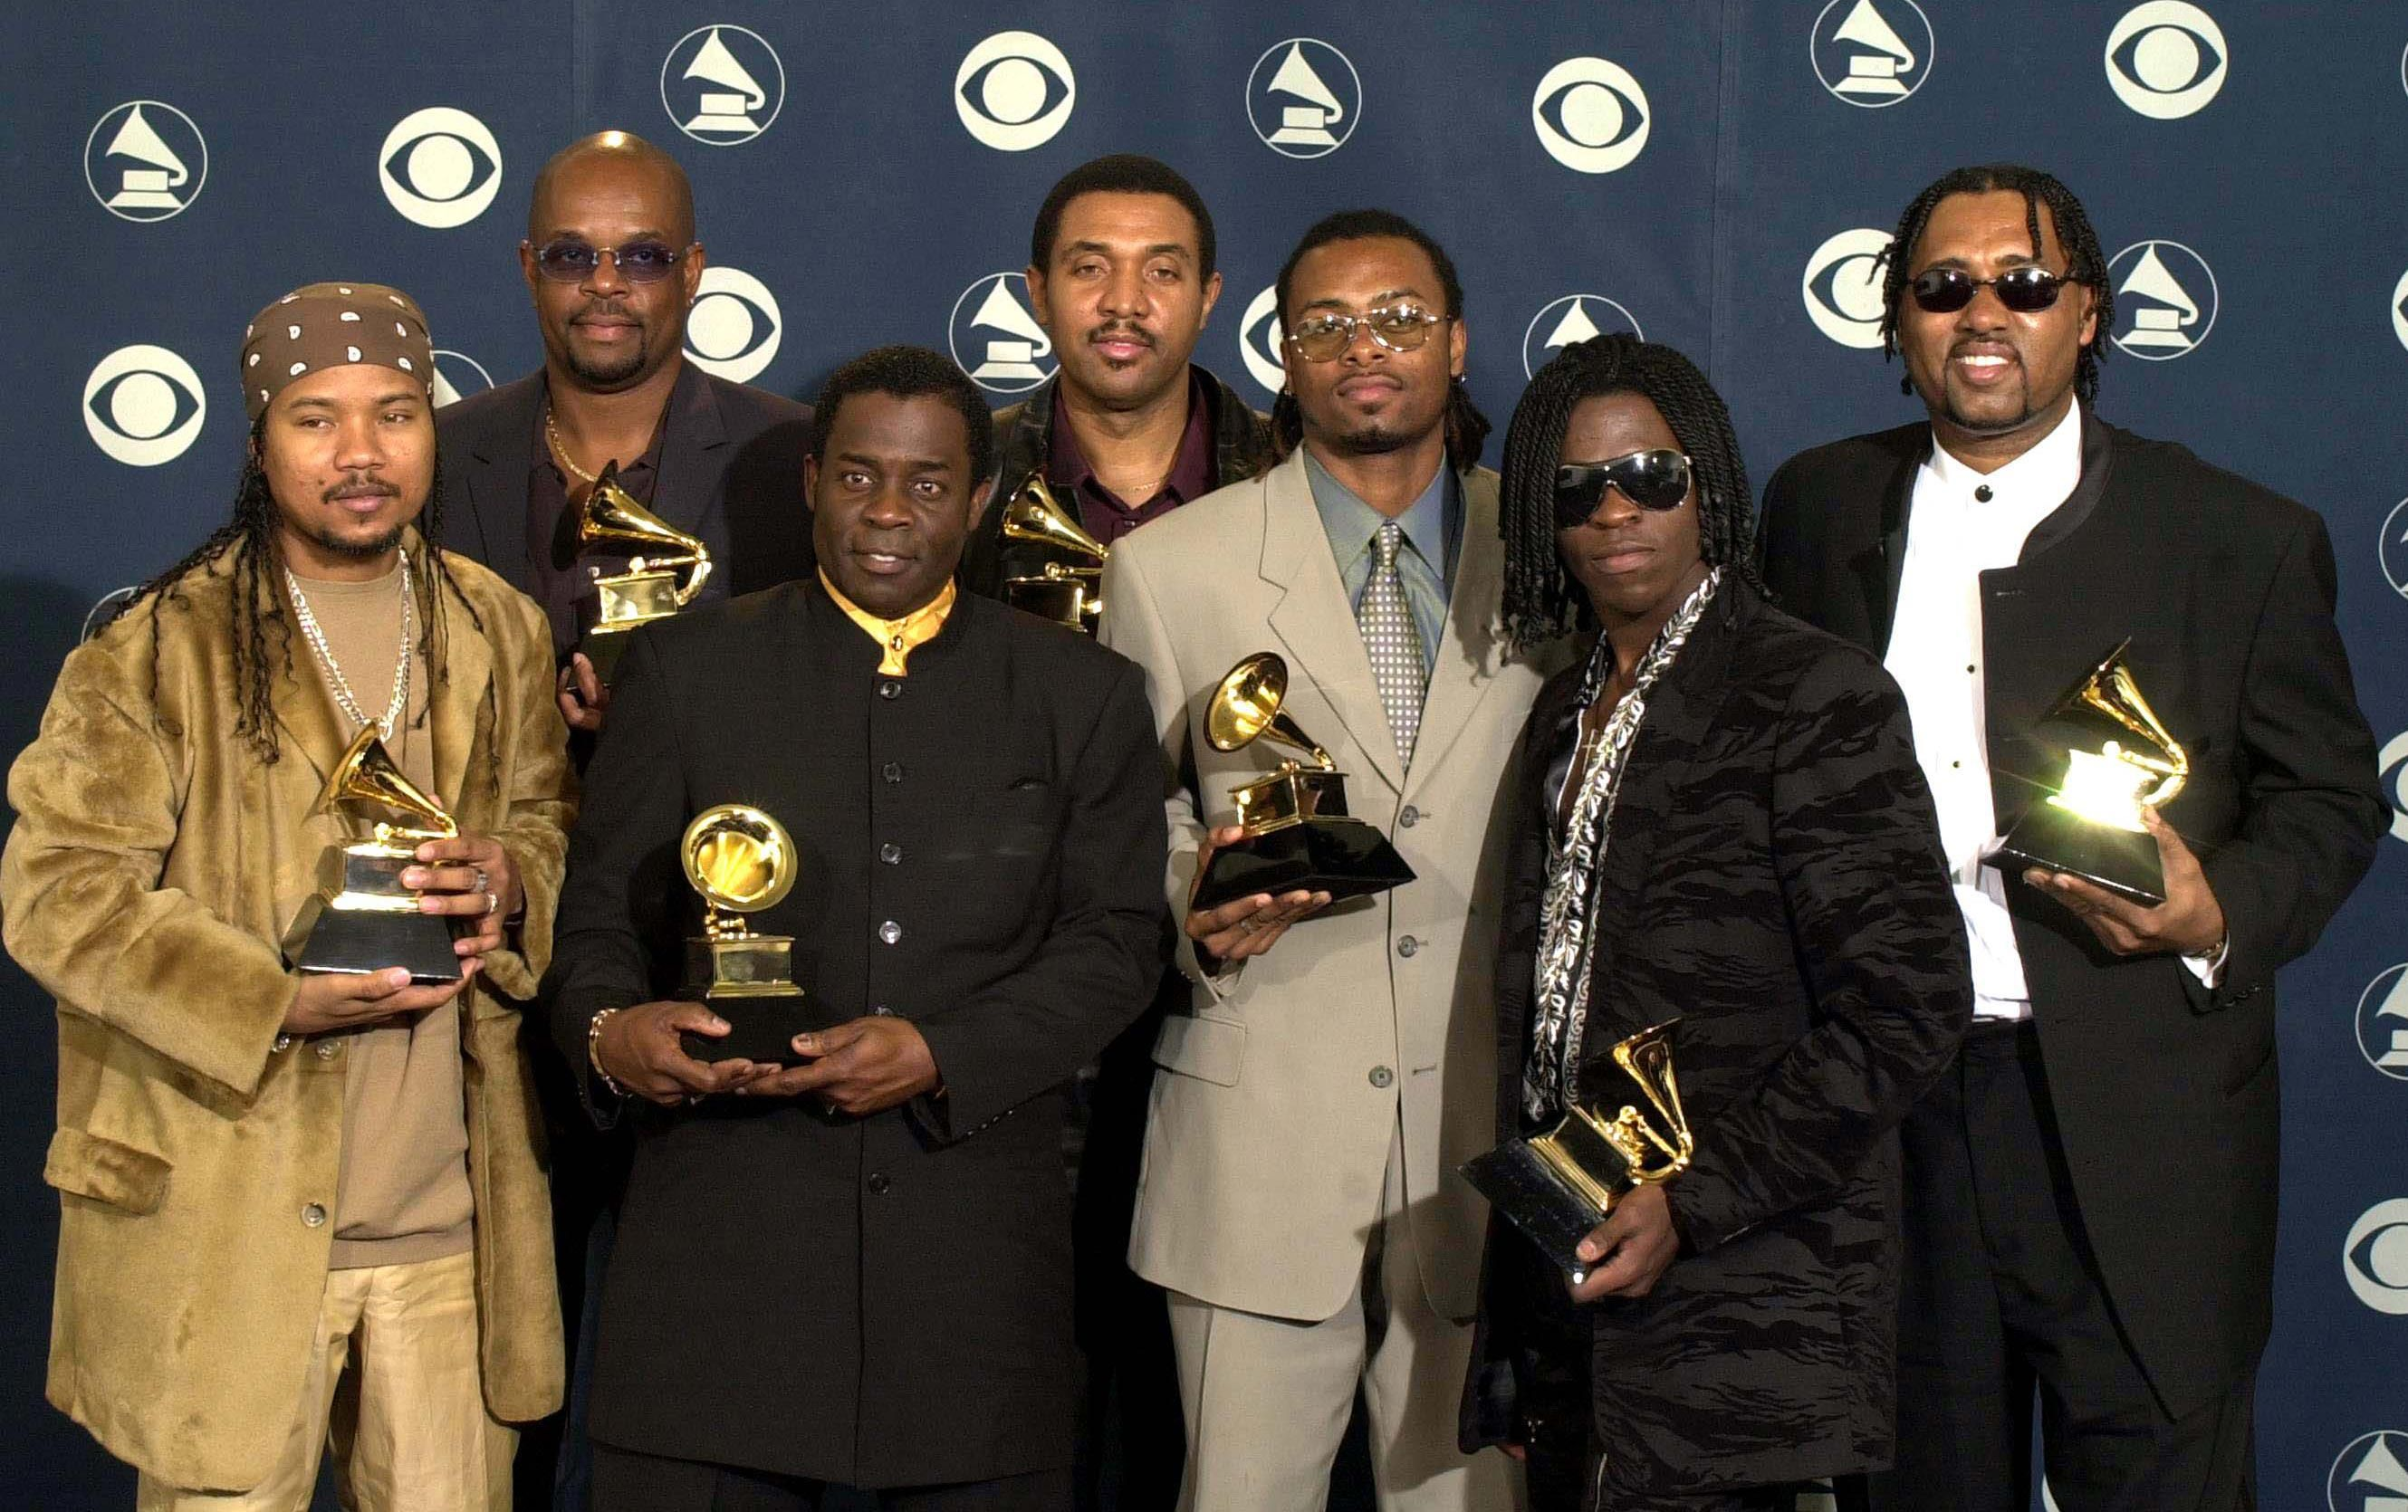 Baha Men with their GRAMMYs